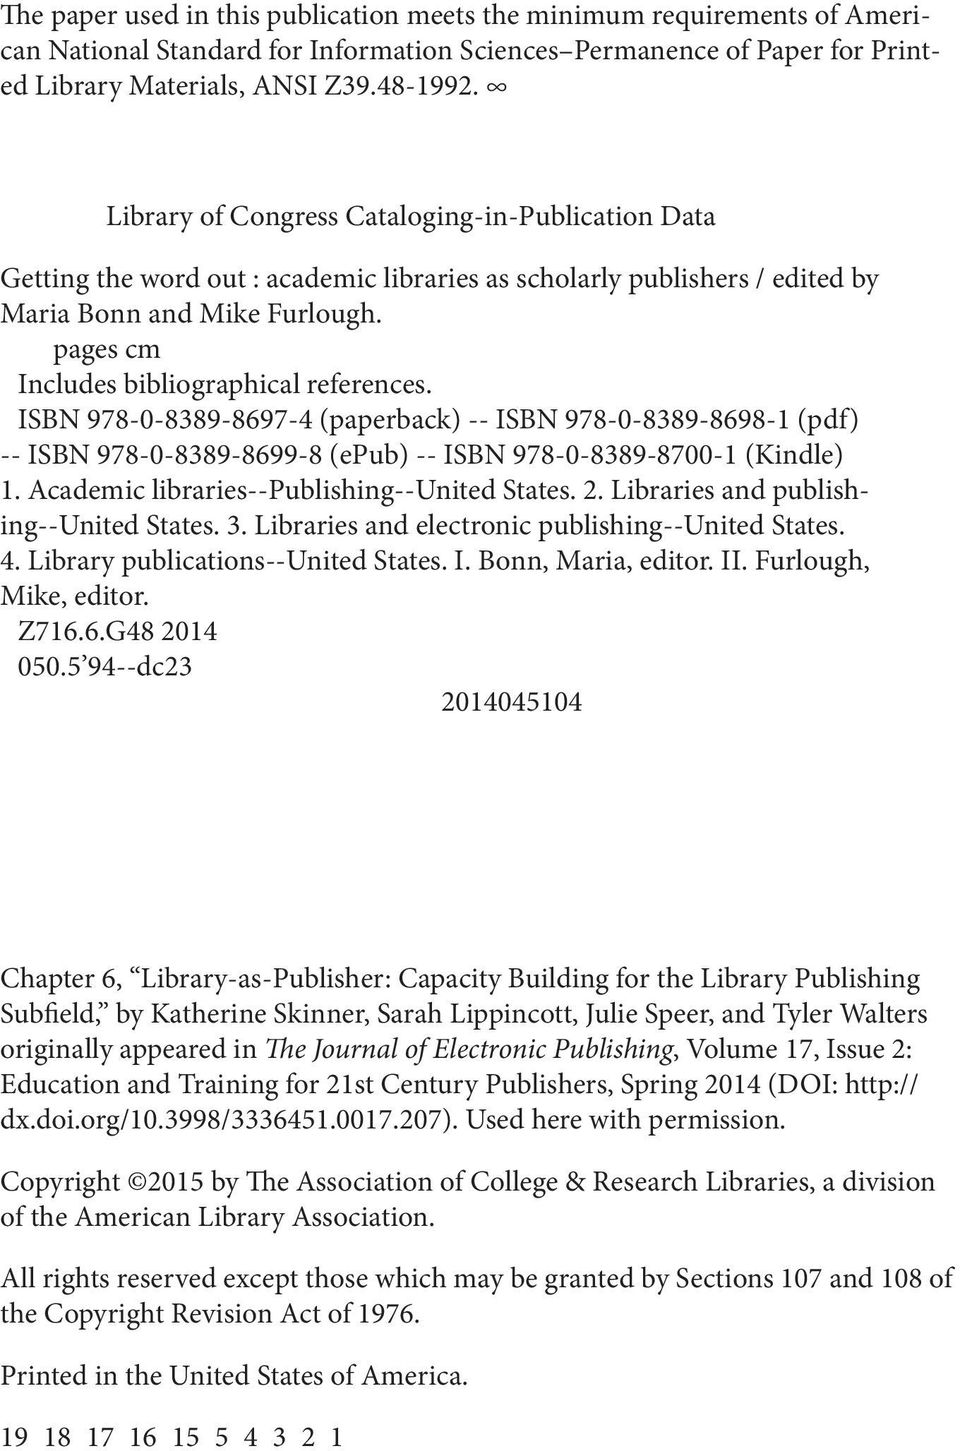 pages cm Includes bibliographical references. ISBN 978-0-8389-8697-4 (paperback) -- ISBN 978-0-8389-8698-1 (pdf) -- ISBN 978-0-8389-8699-8 (epub) -- ISBN 978-0-8389-8700-1 (Kindle) 1.